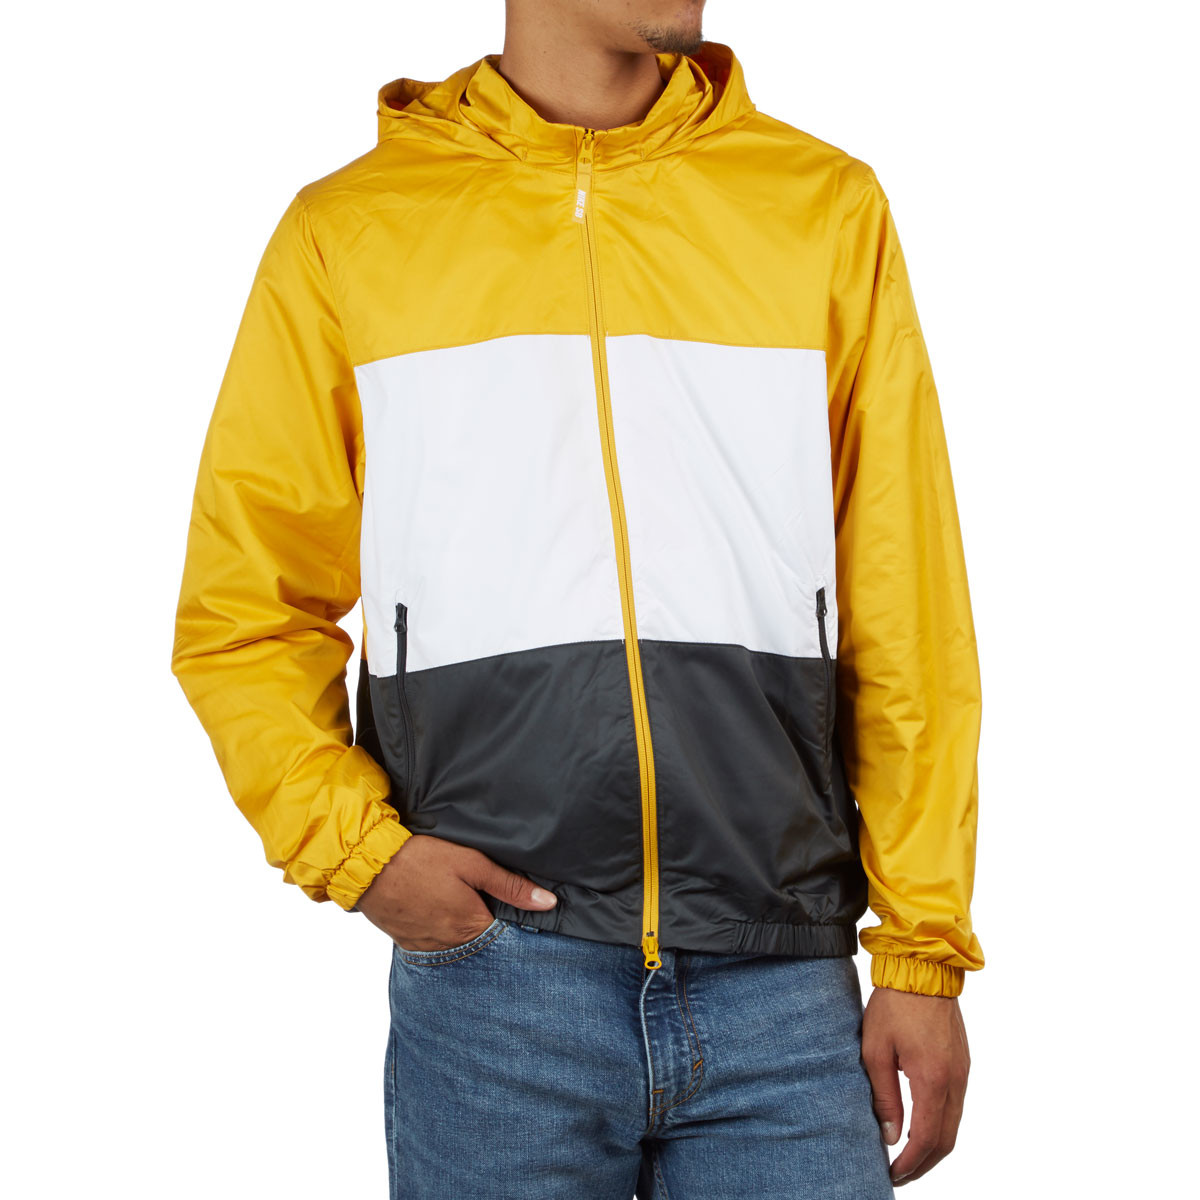 Nike SB Dry-Fit Hooded Stripe Jacket - Yellow Ochre White Anthracite d9d8870e7